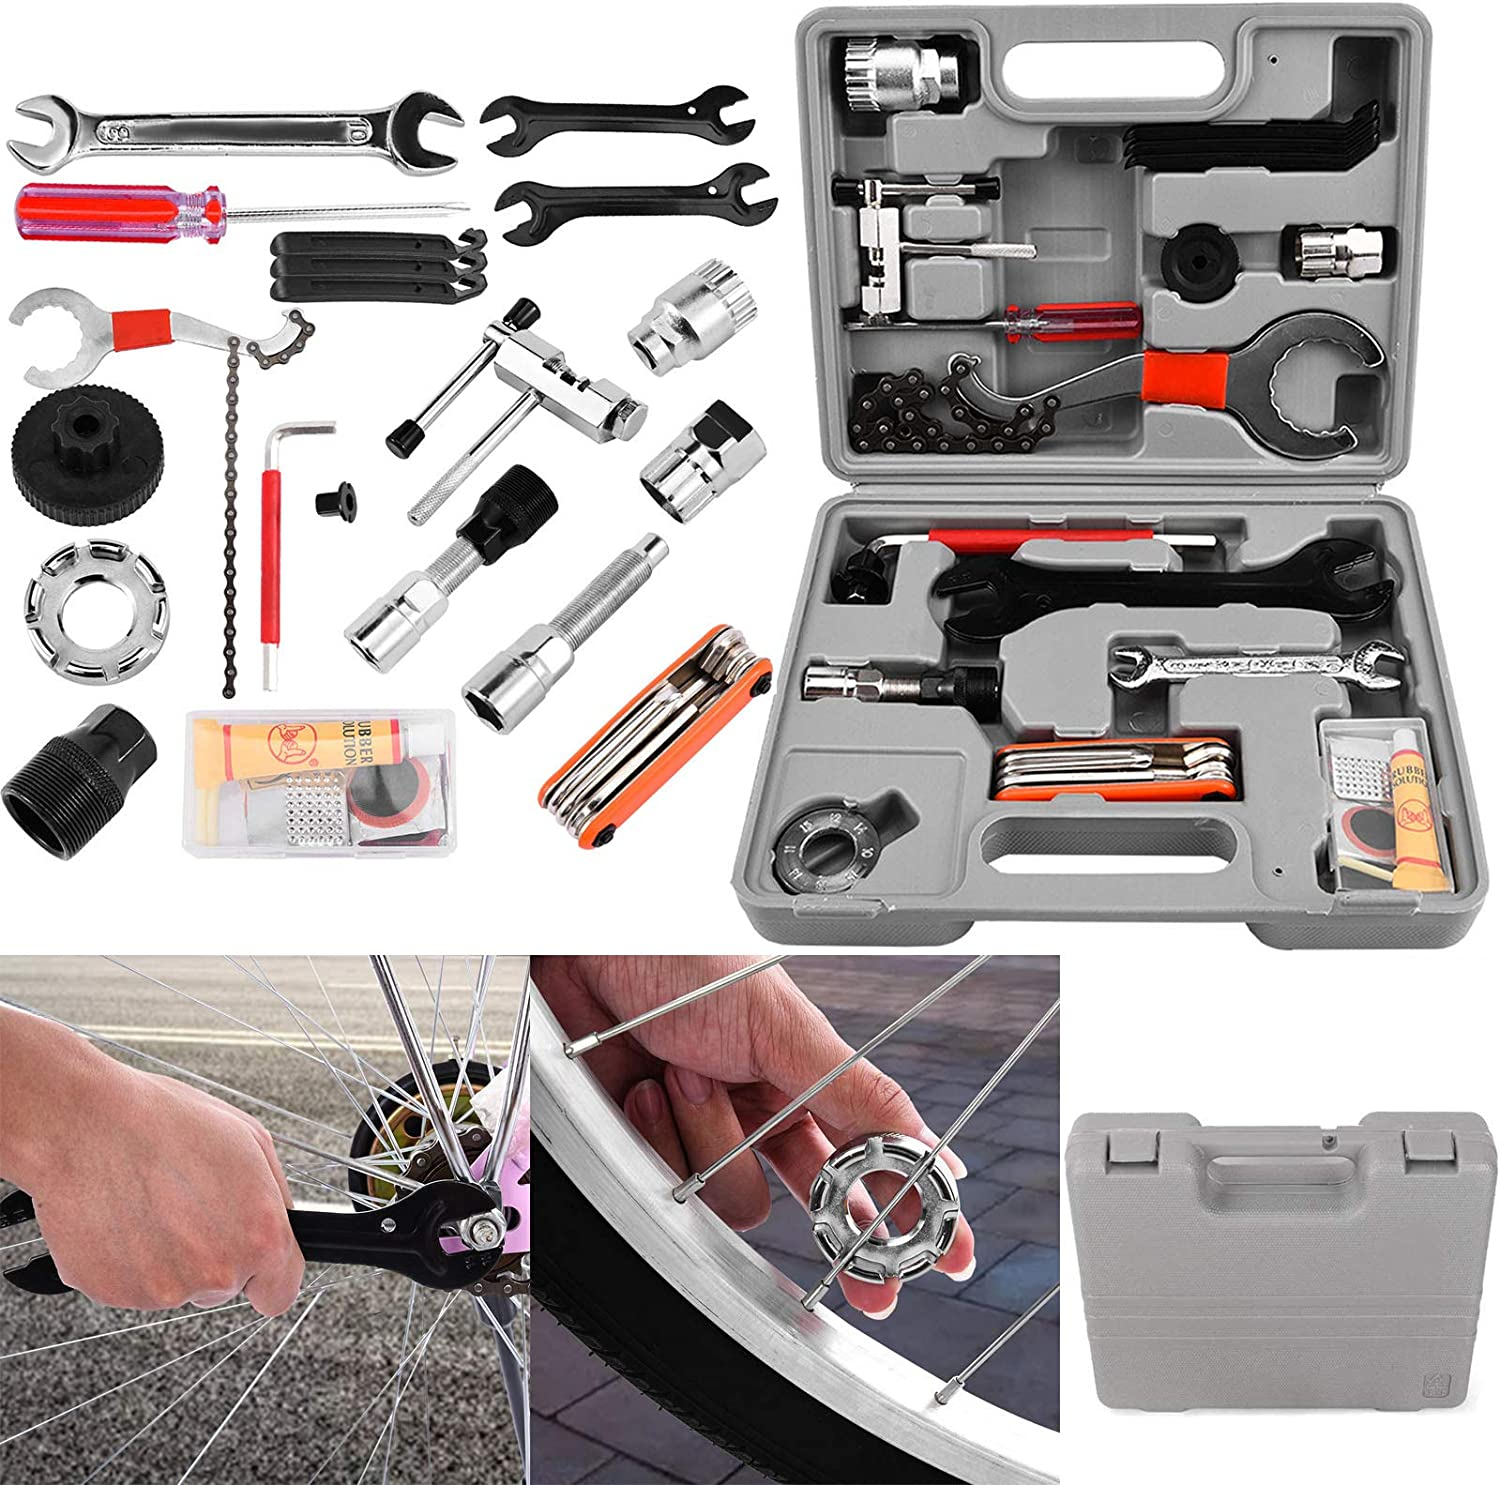 Tengma excellence Bike Tool Kit - 25pcs Mechanic Universal Home P Lowest price challenge Bicycle